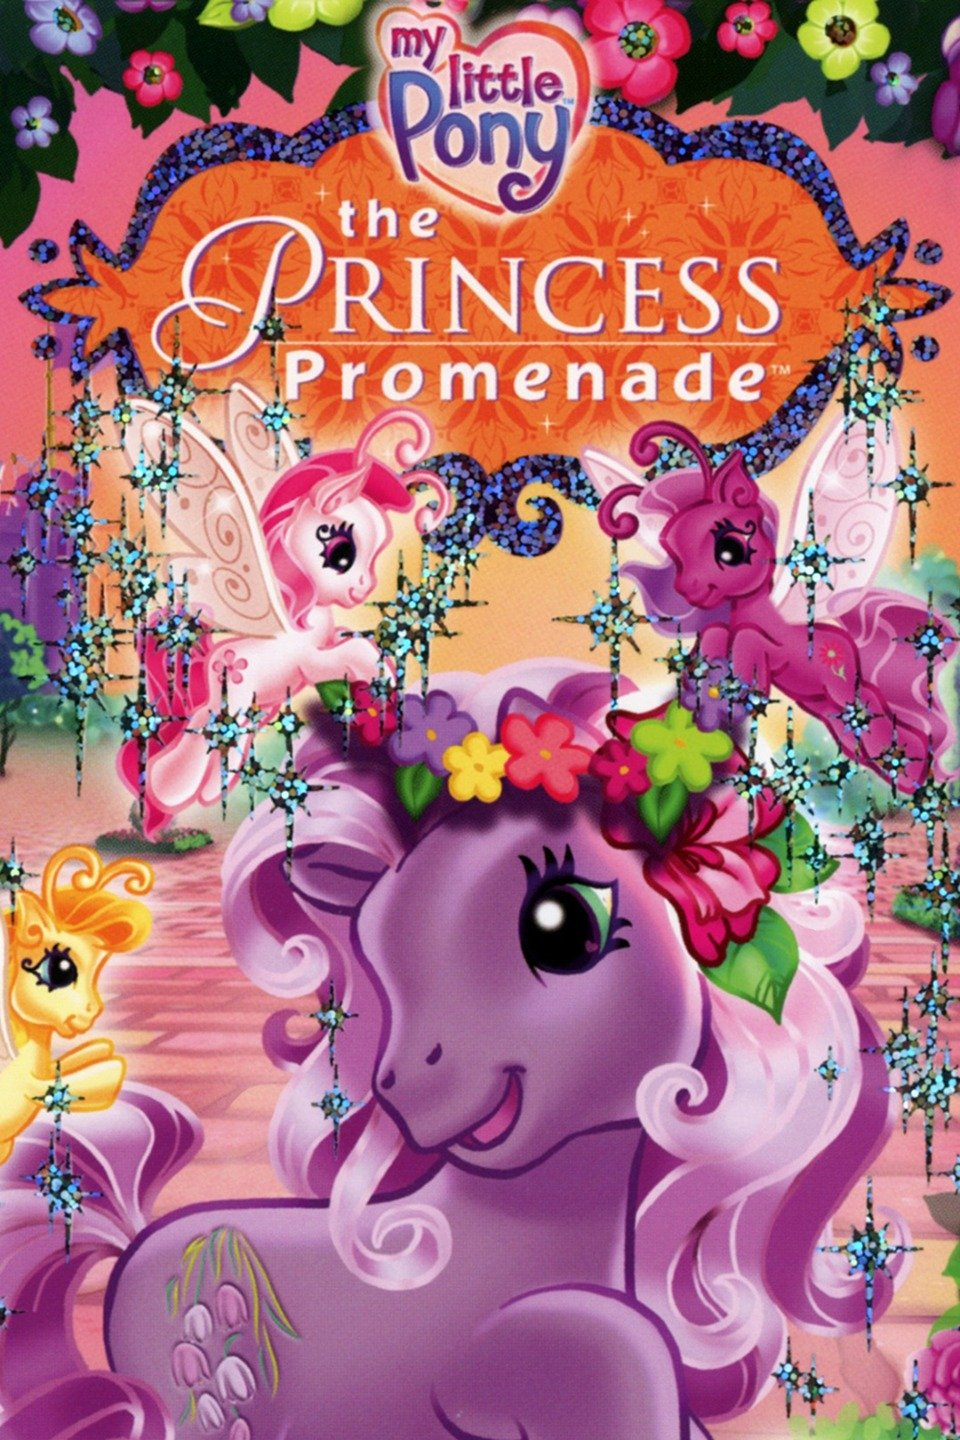 My Little Pony: The Princess Promenade (2006)